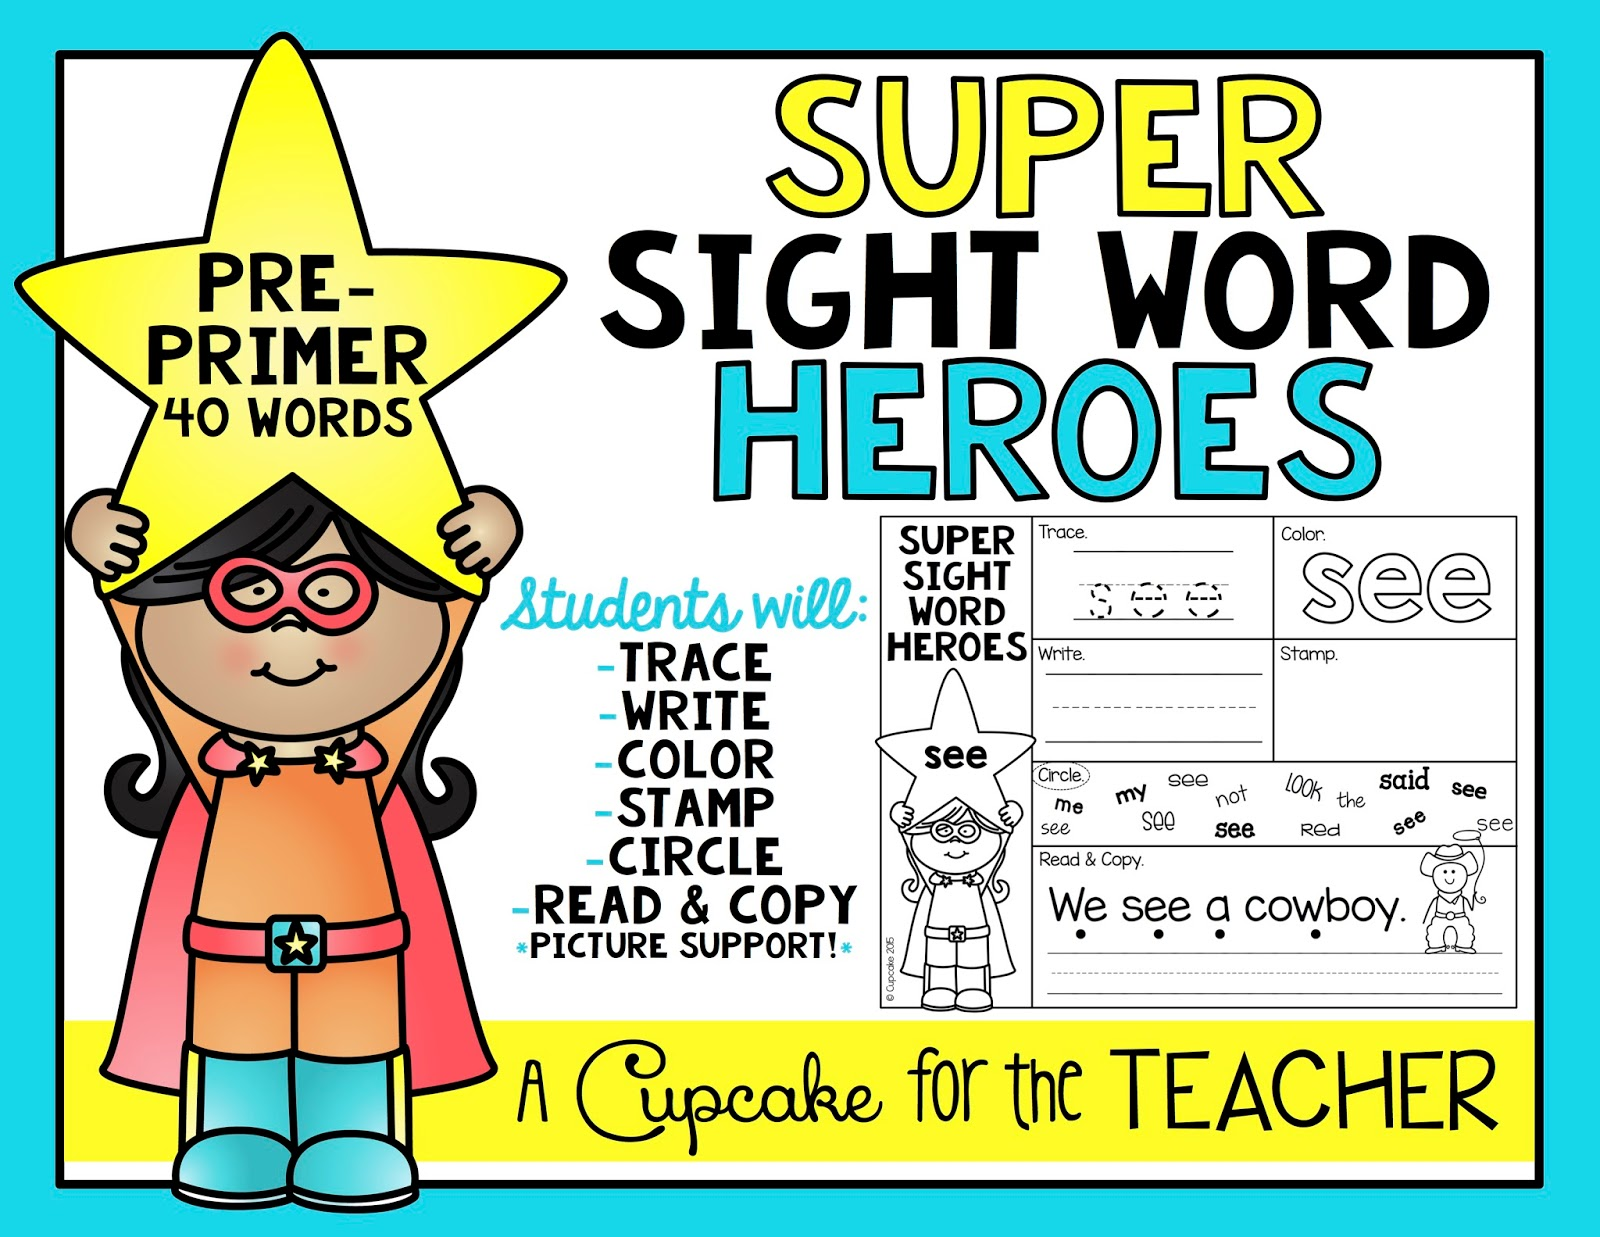 Super Sight Word Heroes